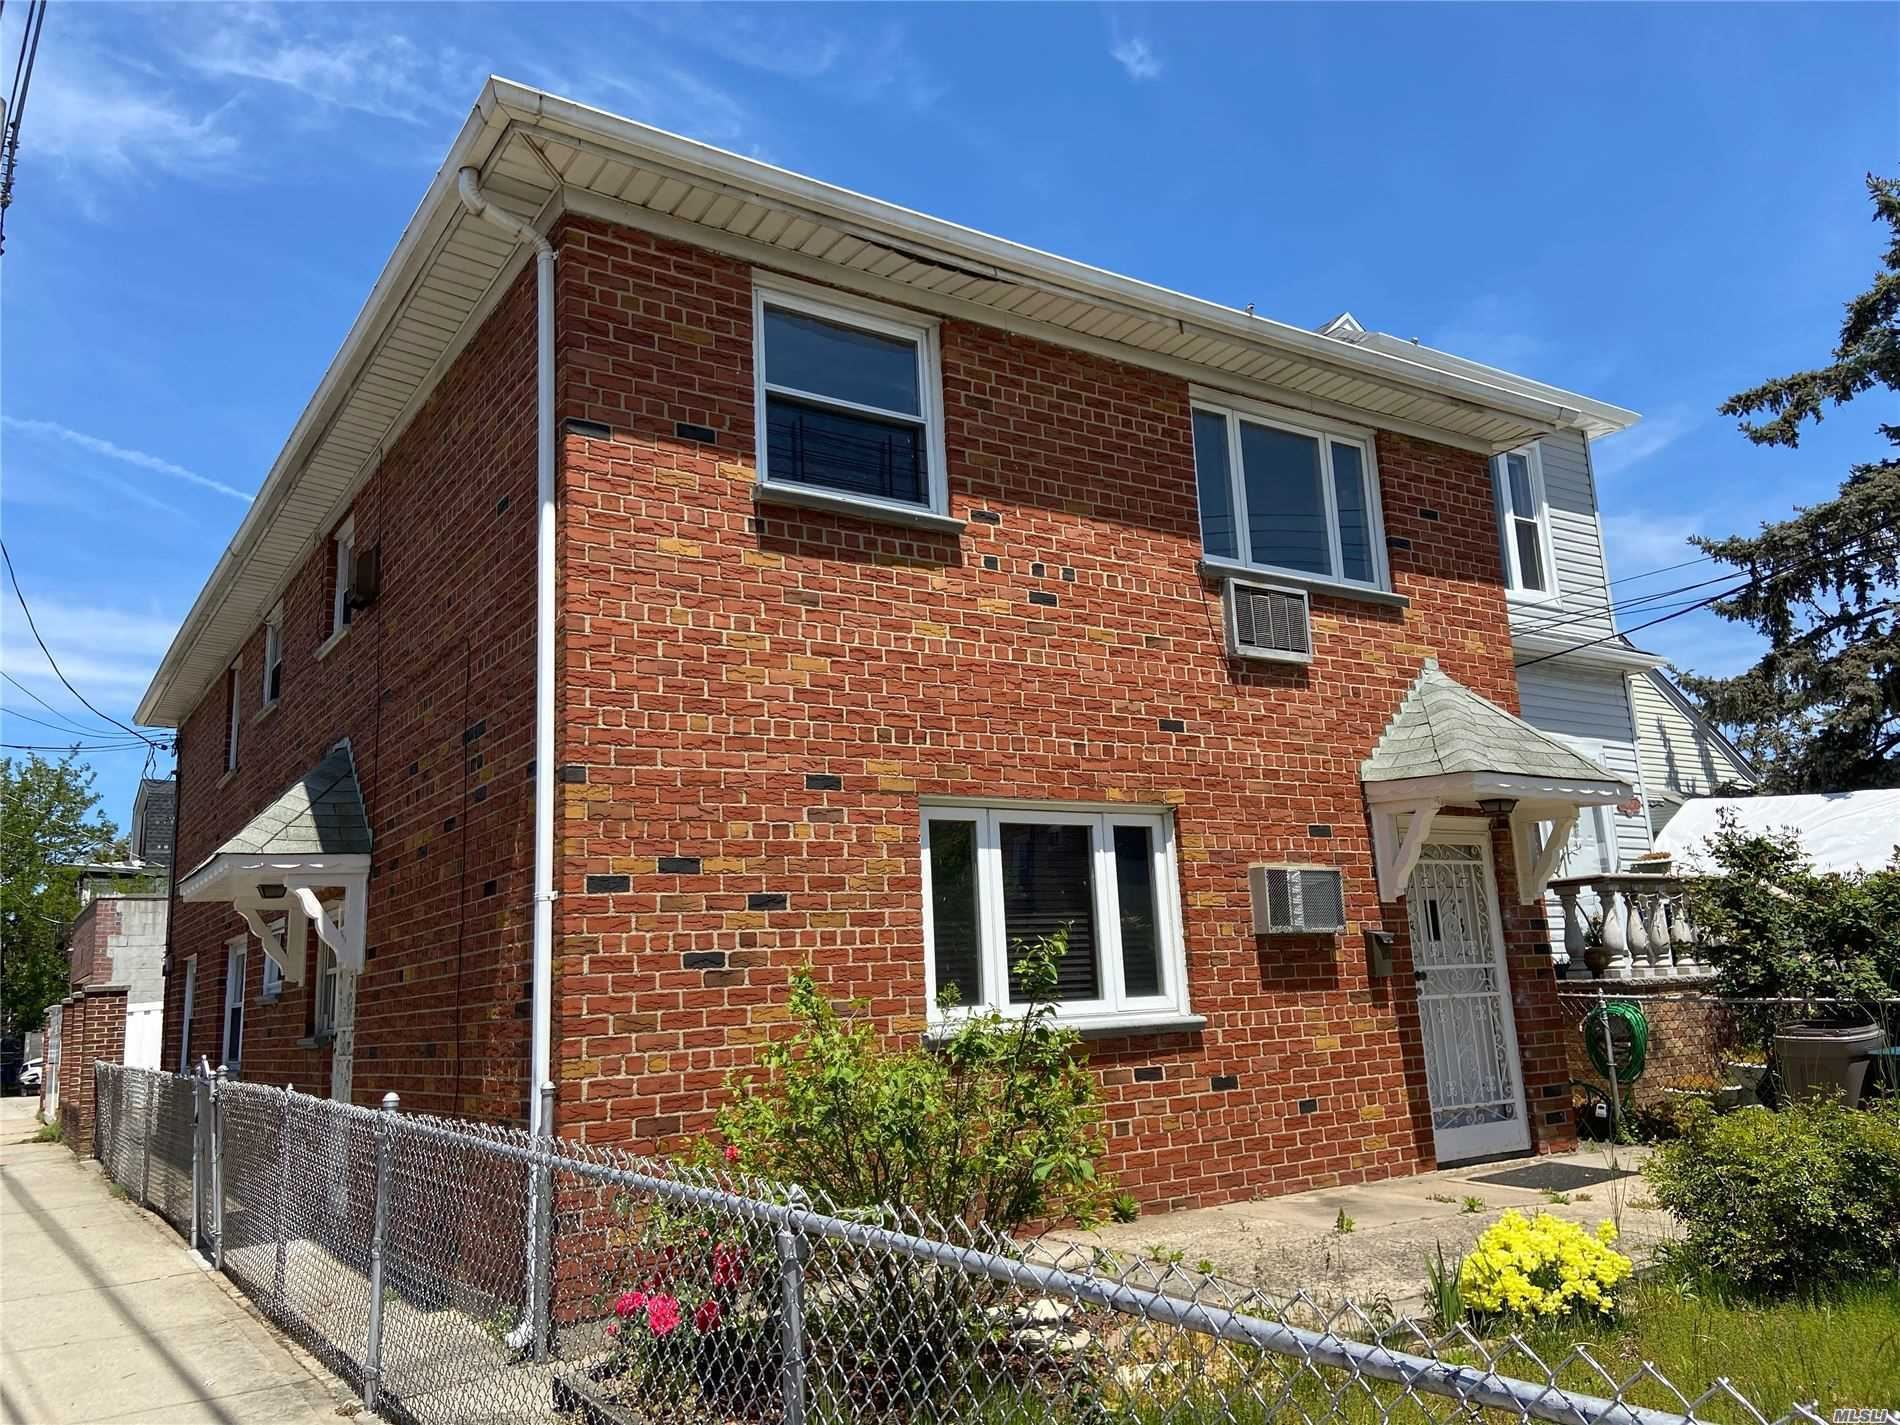 68-03 Garfield Avenue, Woodside, NY 11377 - MLS#: 3215498